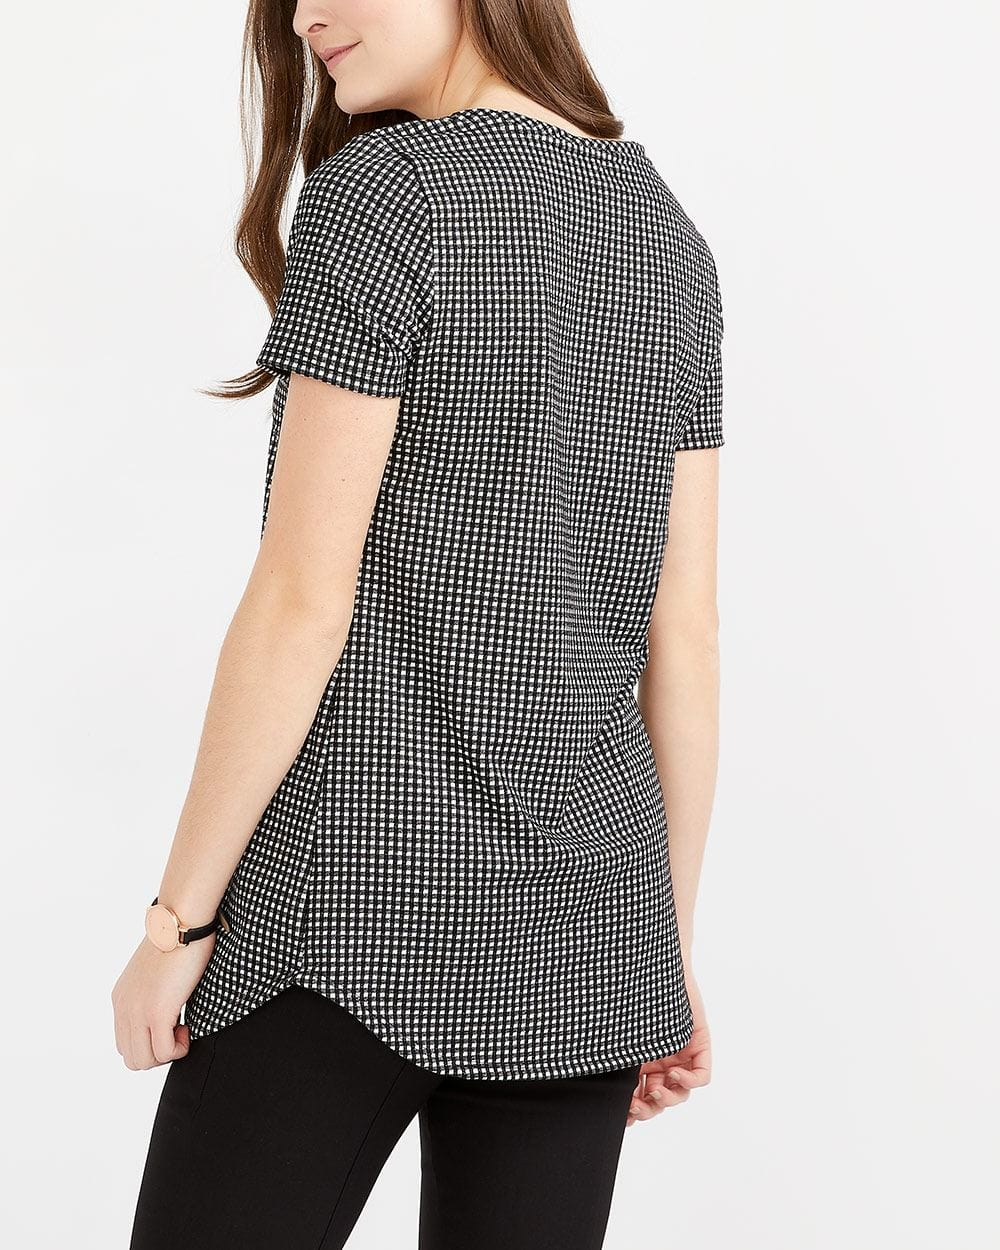 Patch Gingham Tunic Top